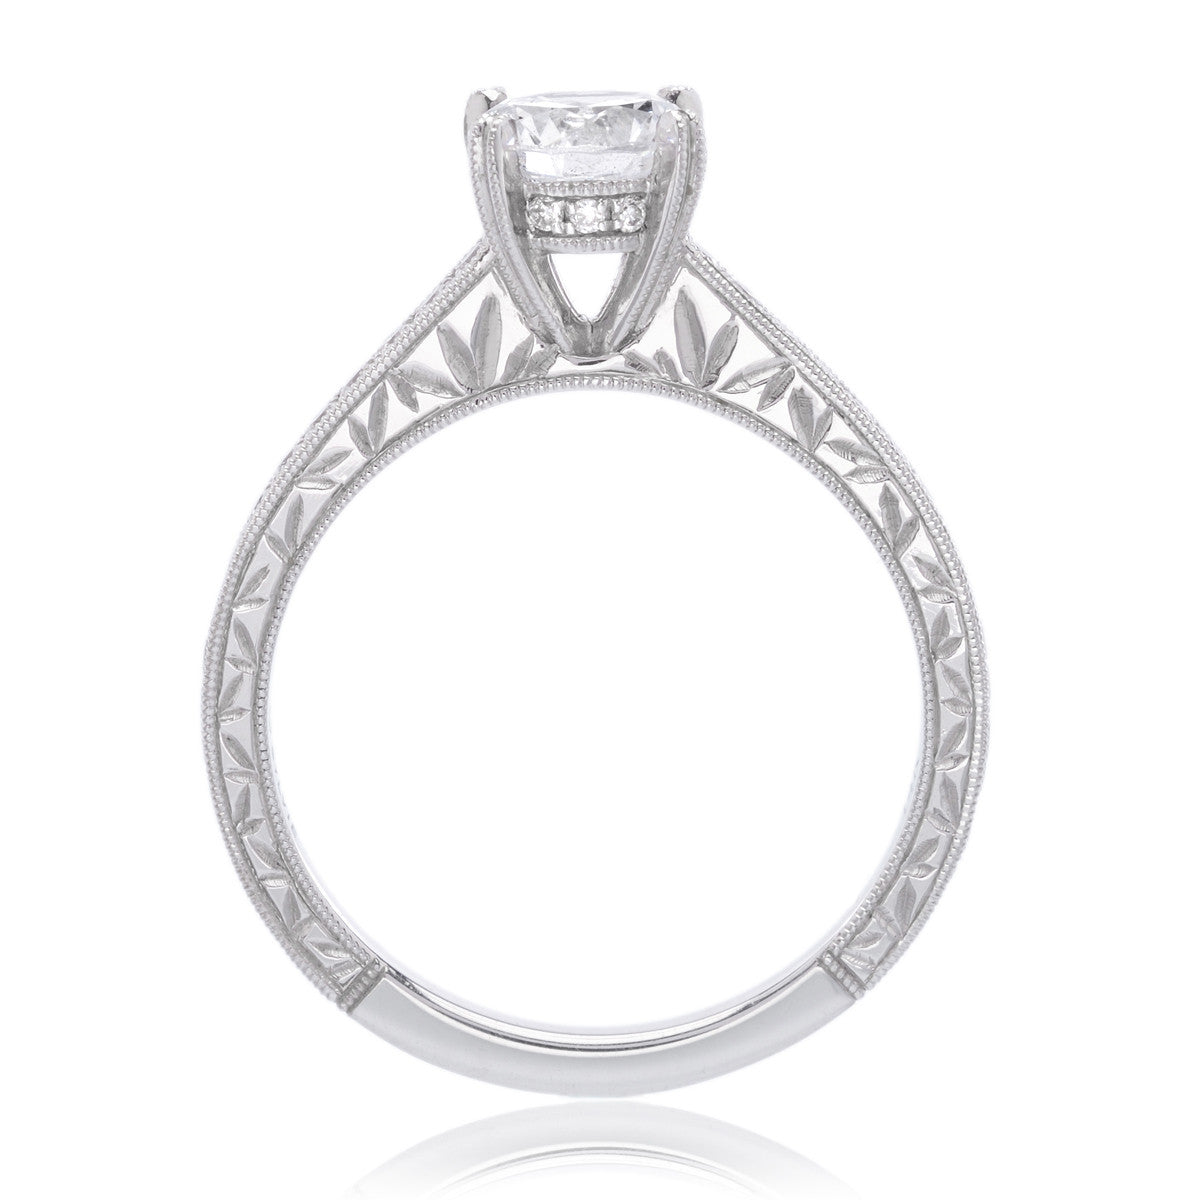 14K White Gold Classic Engagement Ring Setting